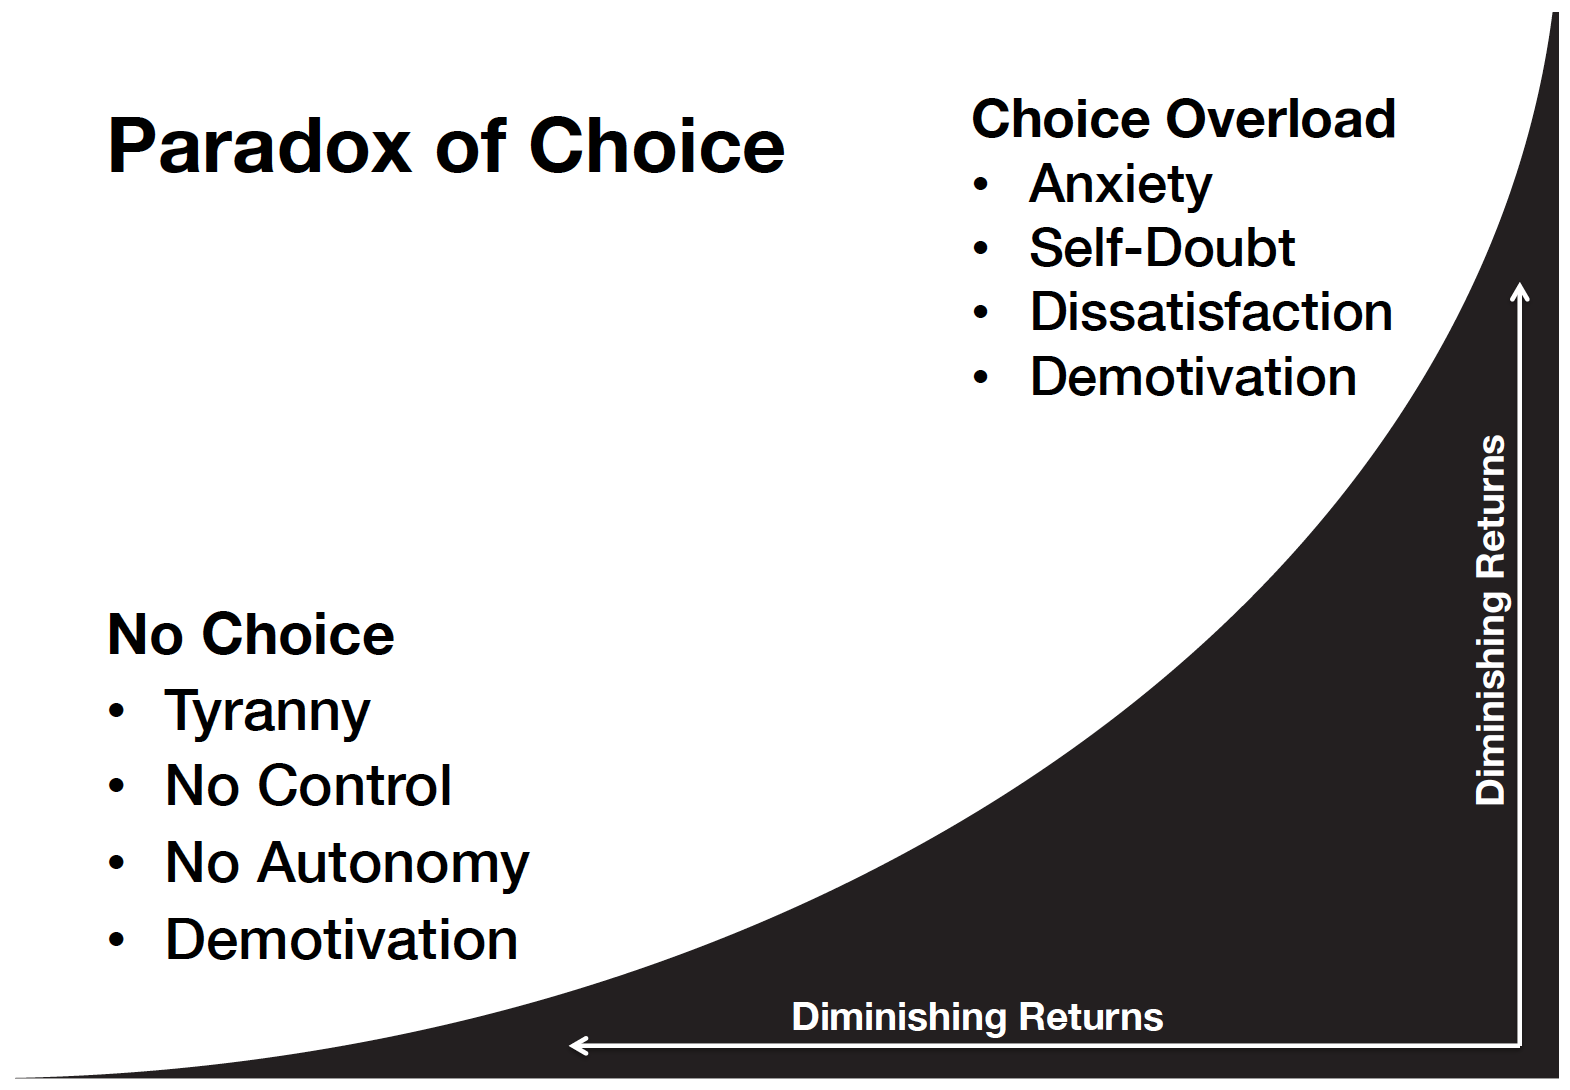 The Paradox of Choice applies to ecommerce too